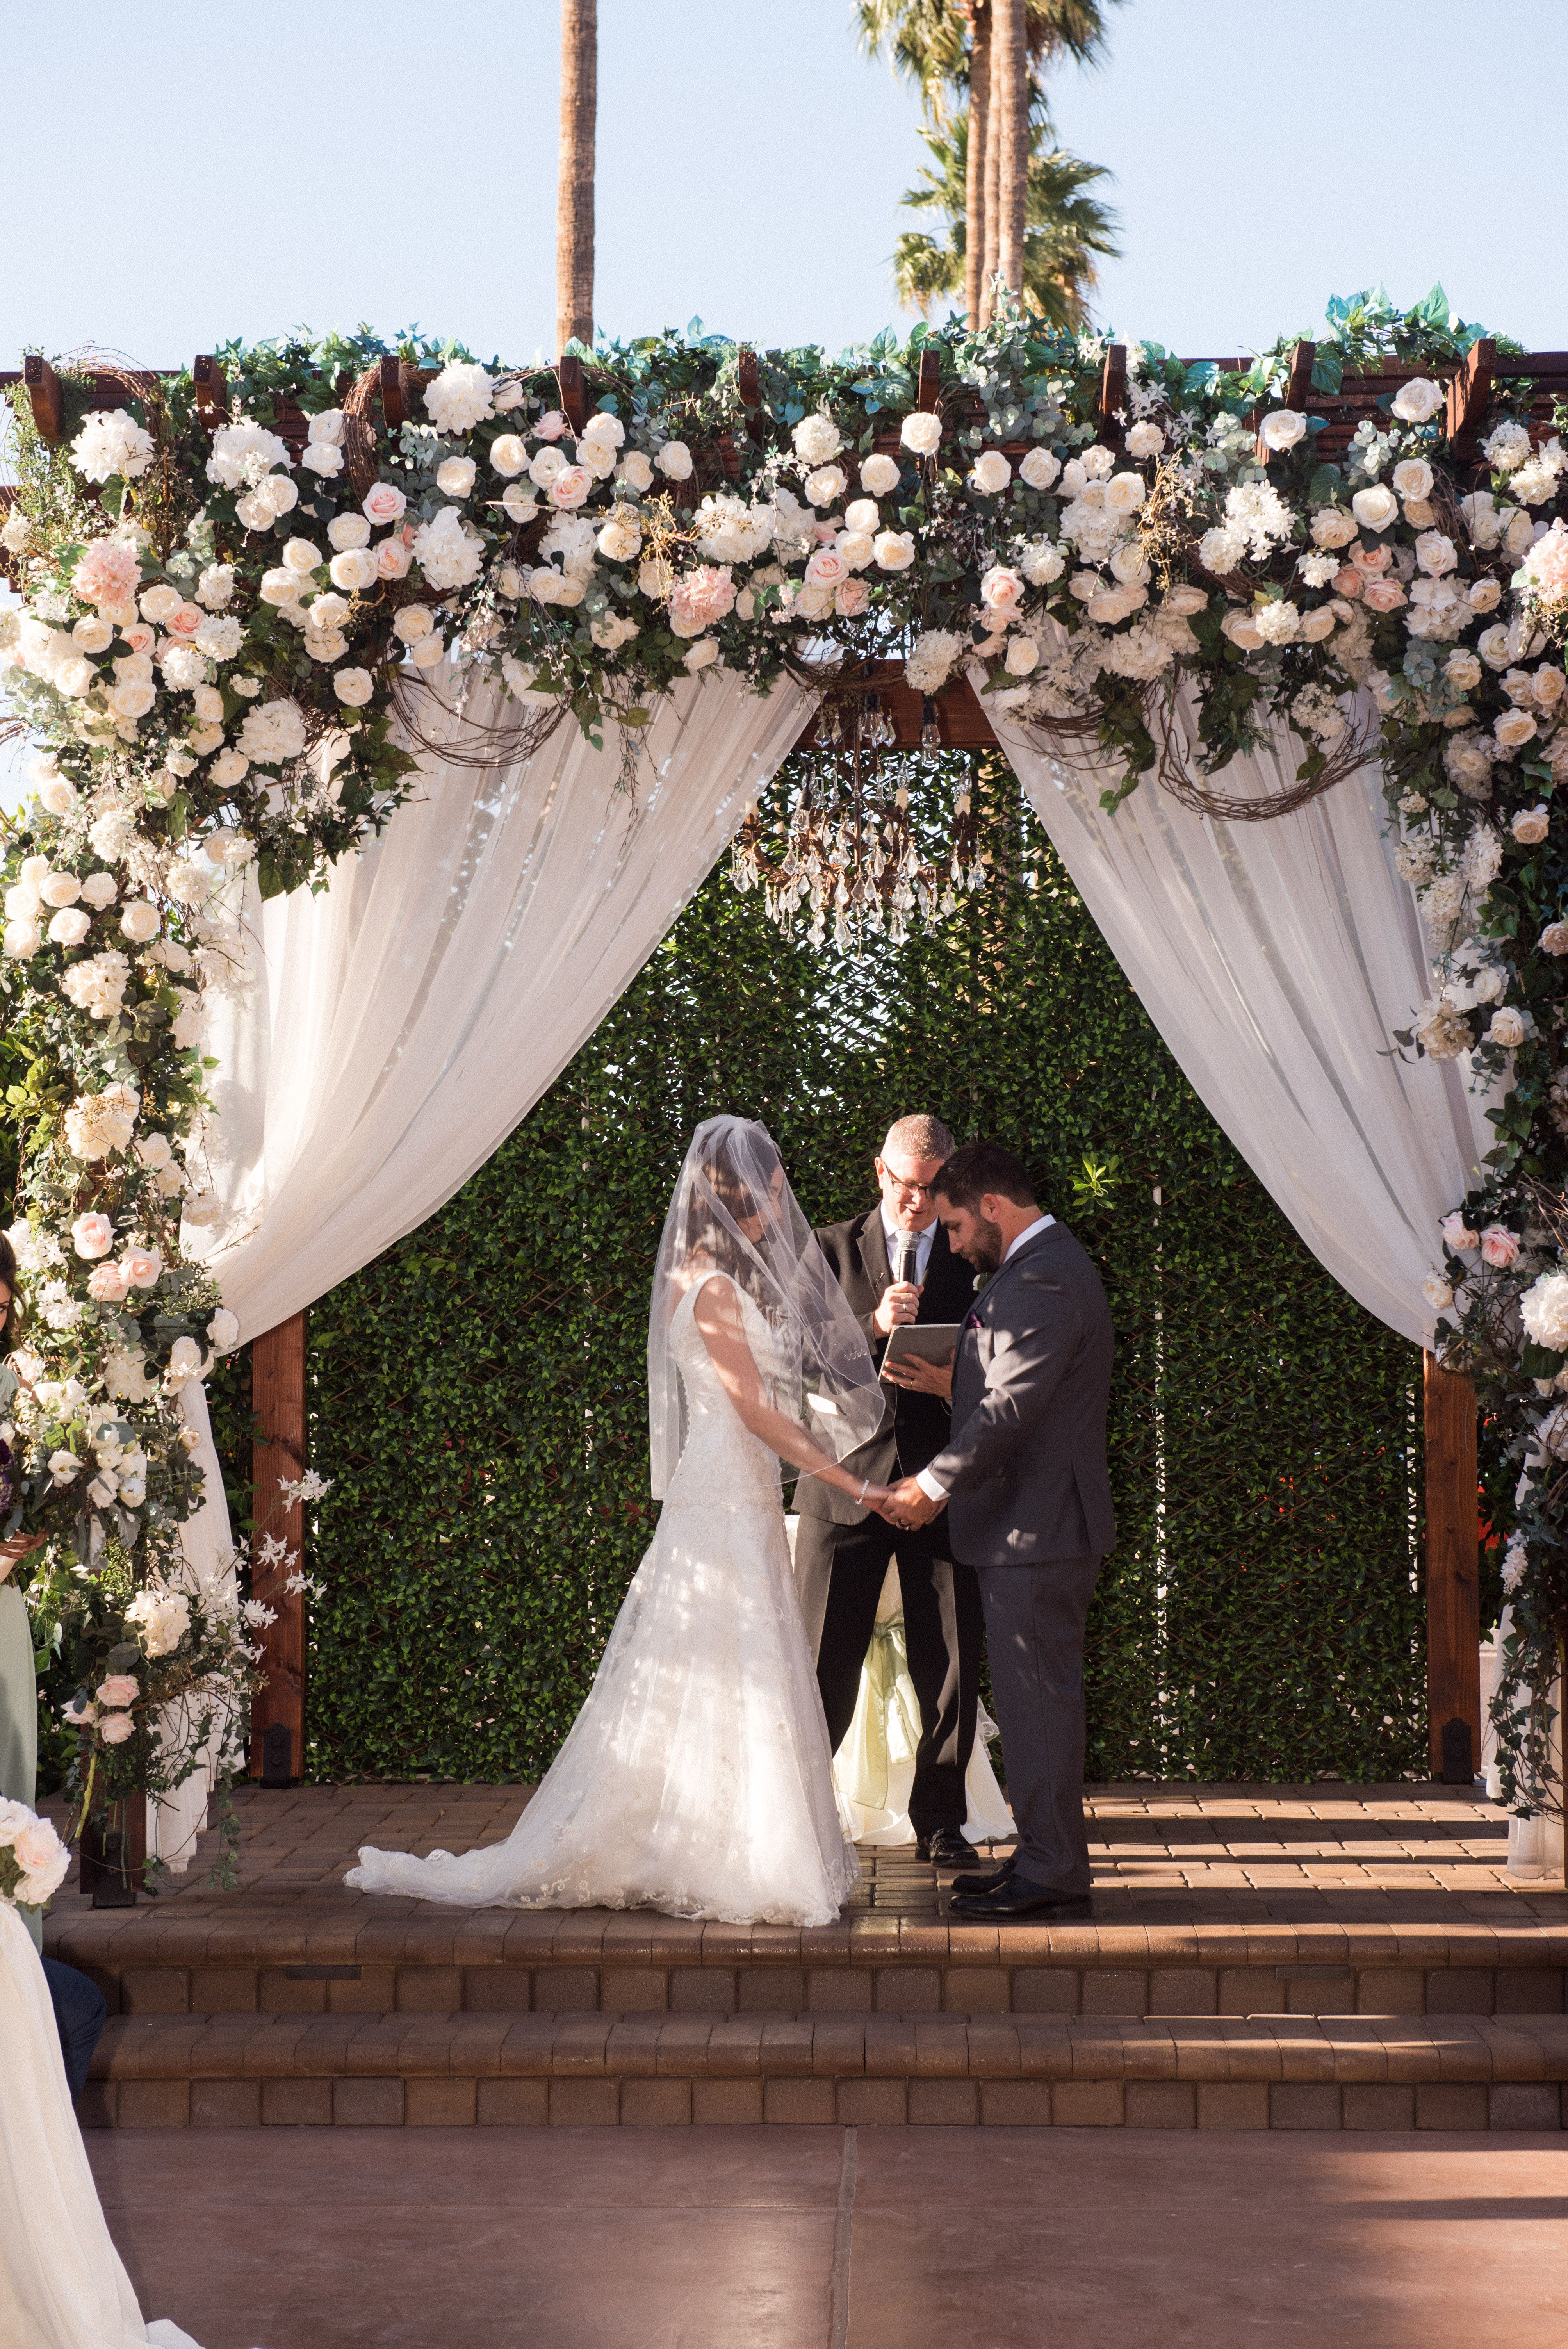 Bride And Groom During Their Outdoor Wedding Ceremony In Our